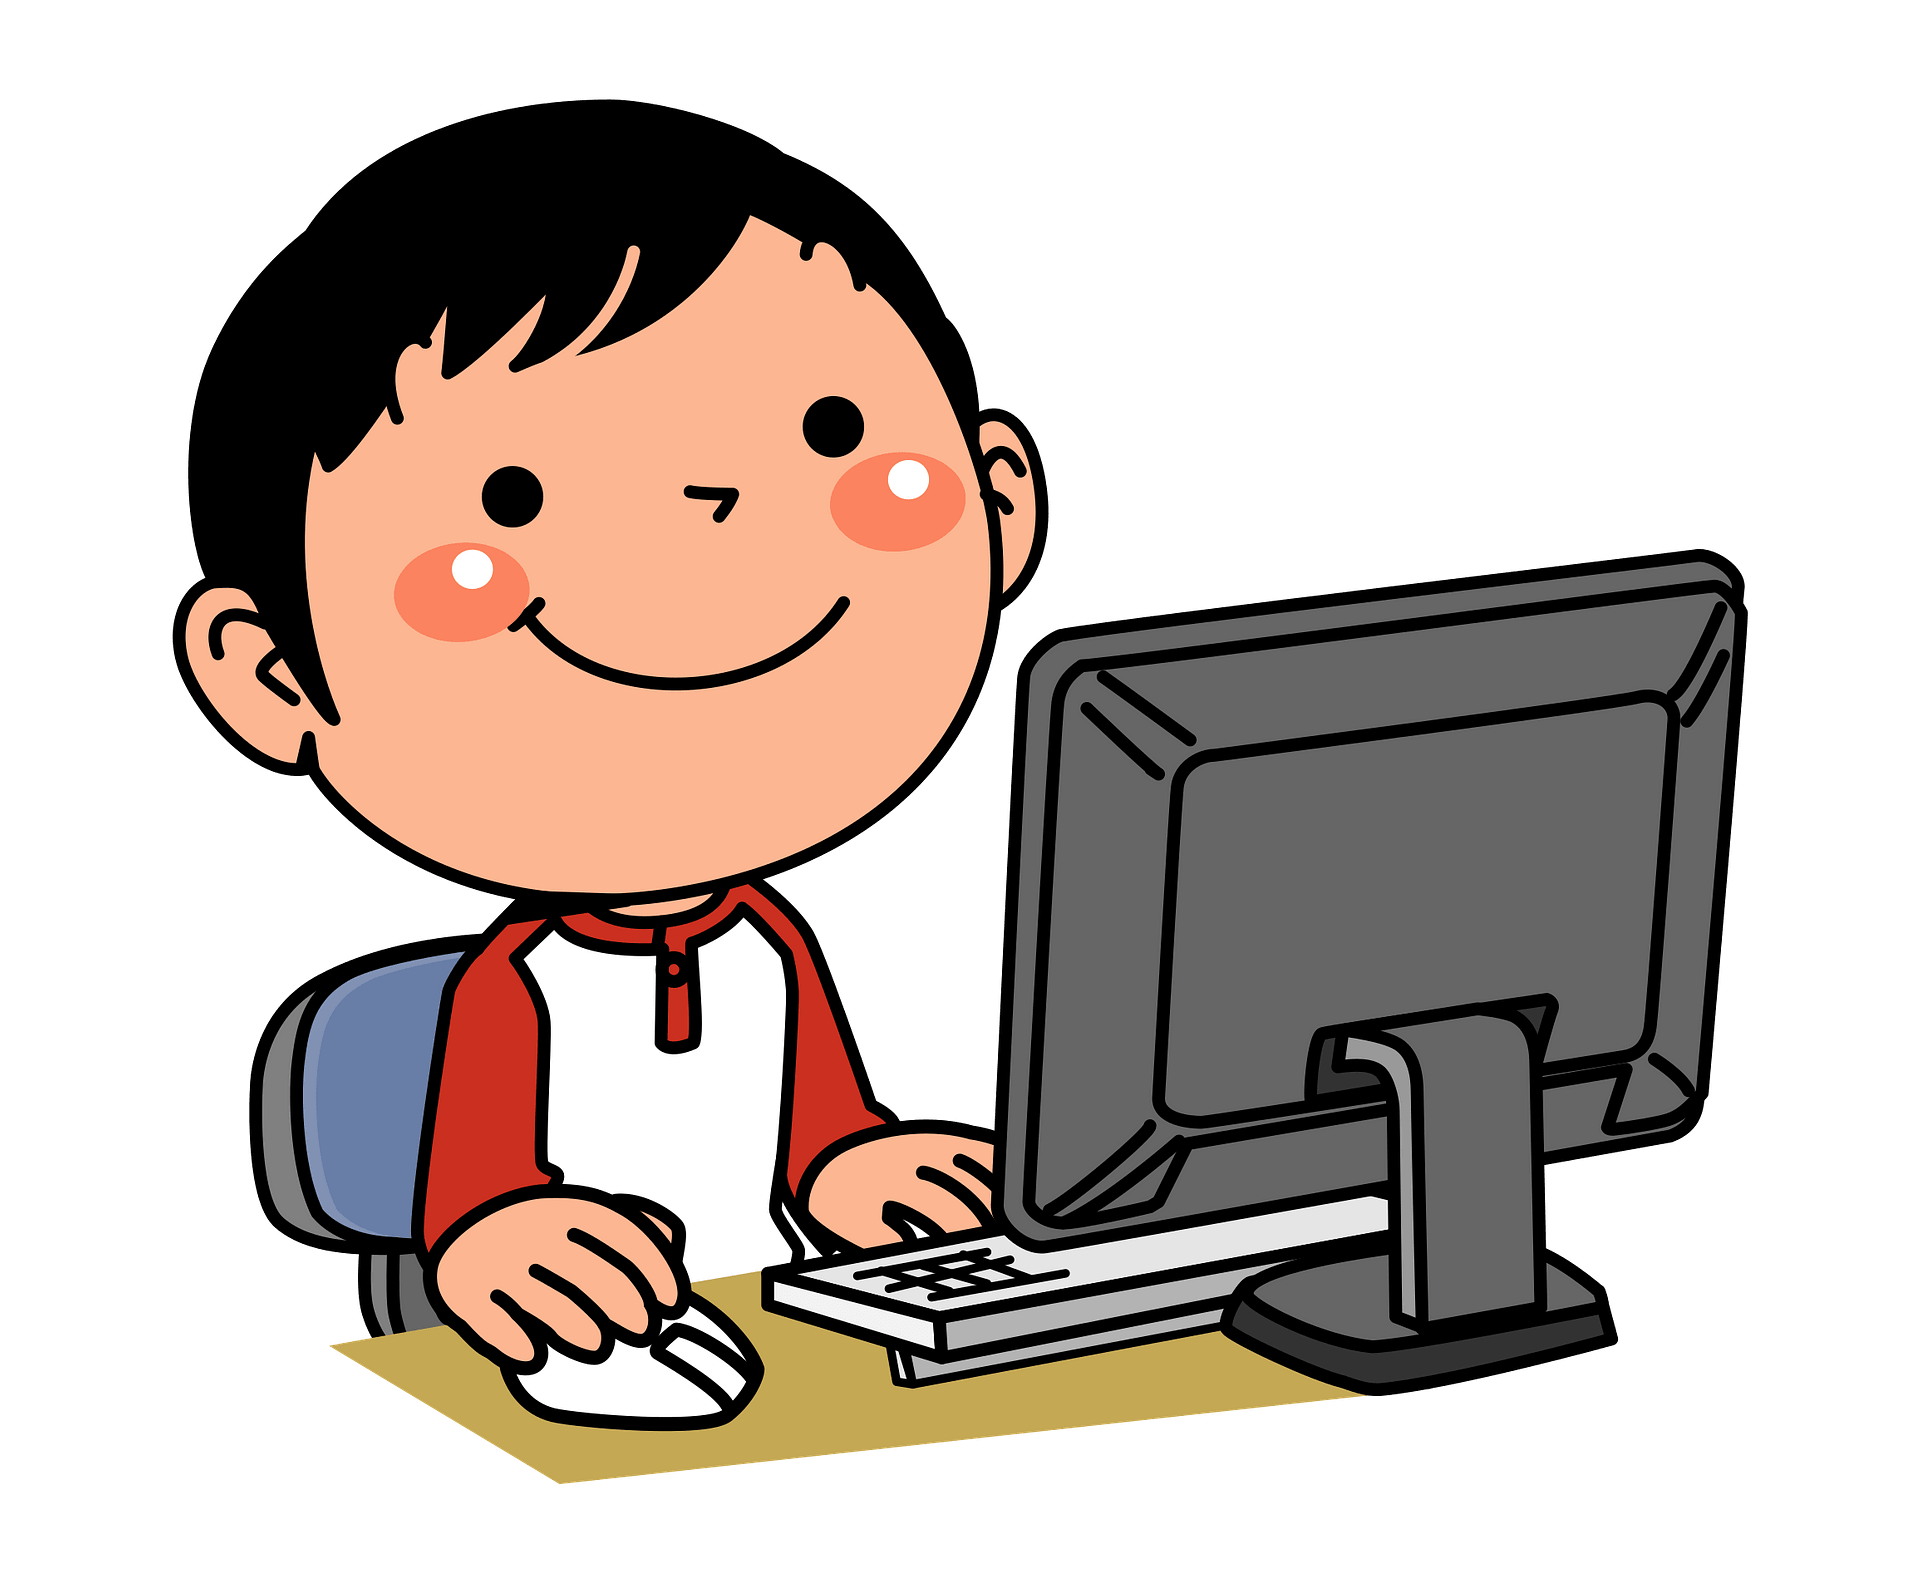 Boy is Playing on the Computer clipart. Free download transparent .PNG |  Creazilla